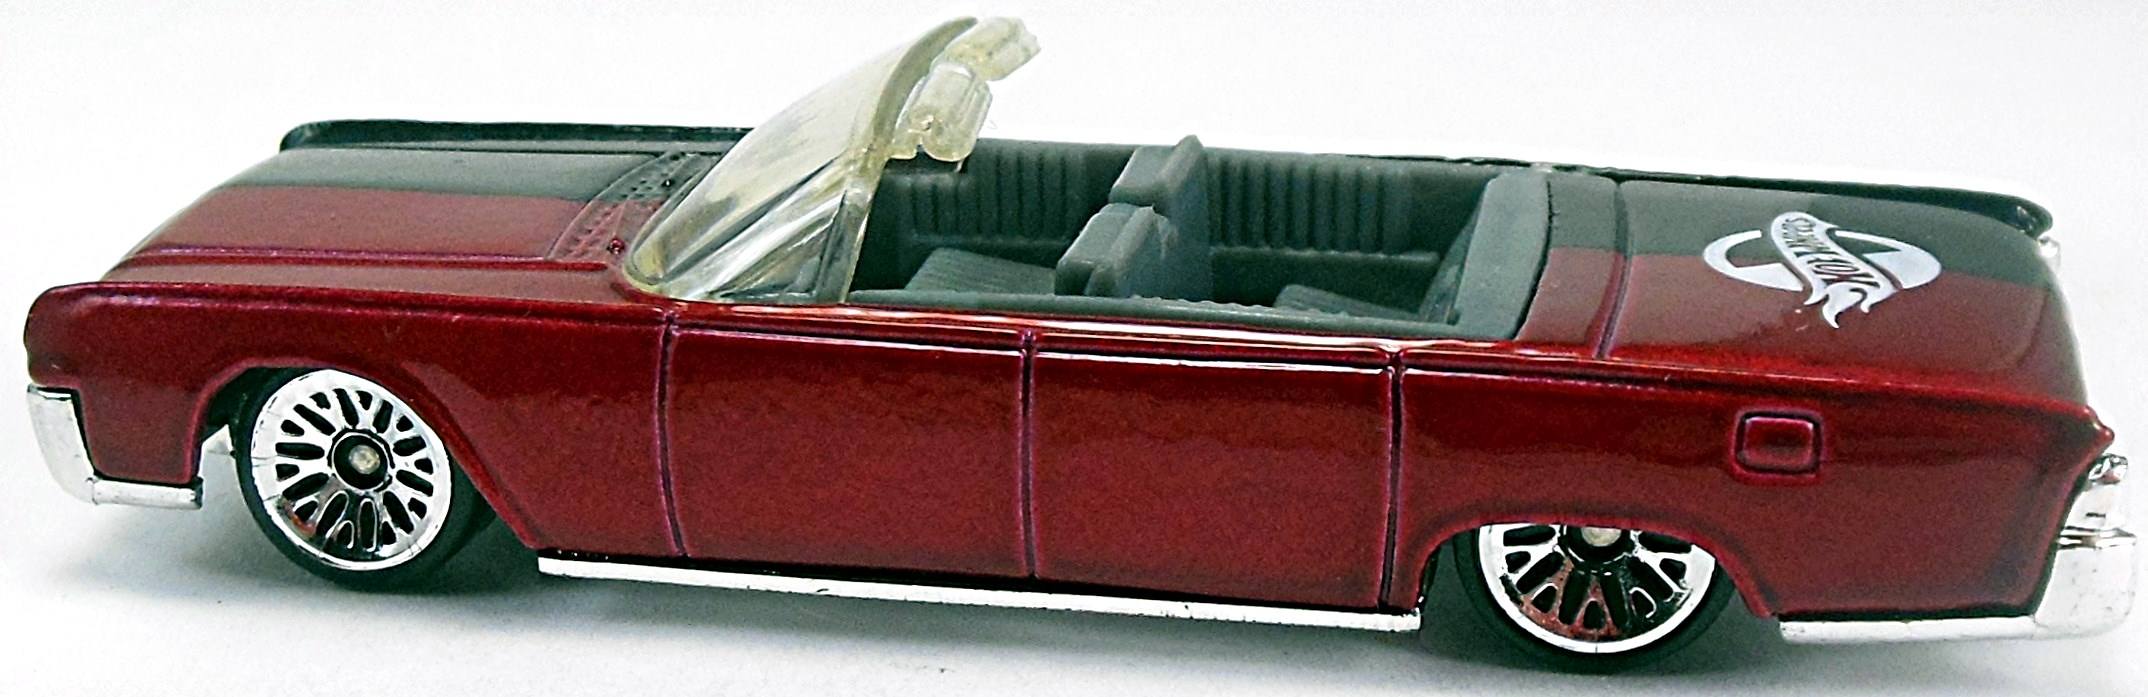 1964 lincoln continental convertible 82mm 2000 hot. Black Bedroom Furniture Sets. Home Design Ideas